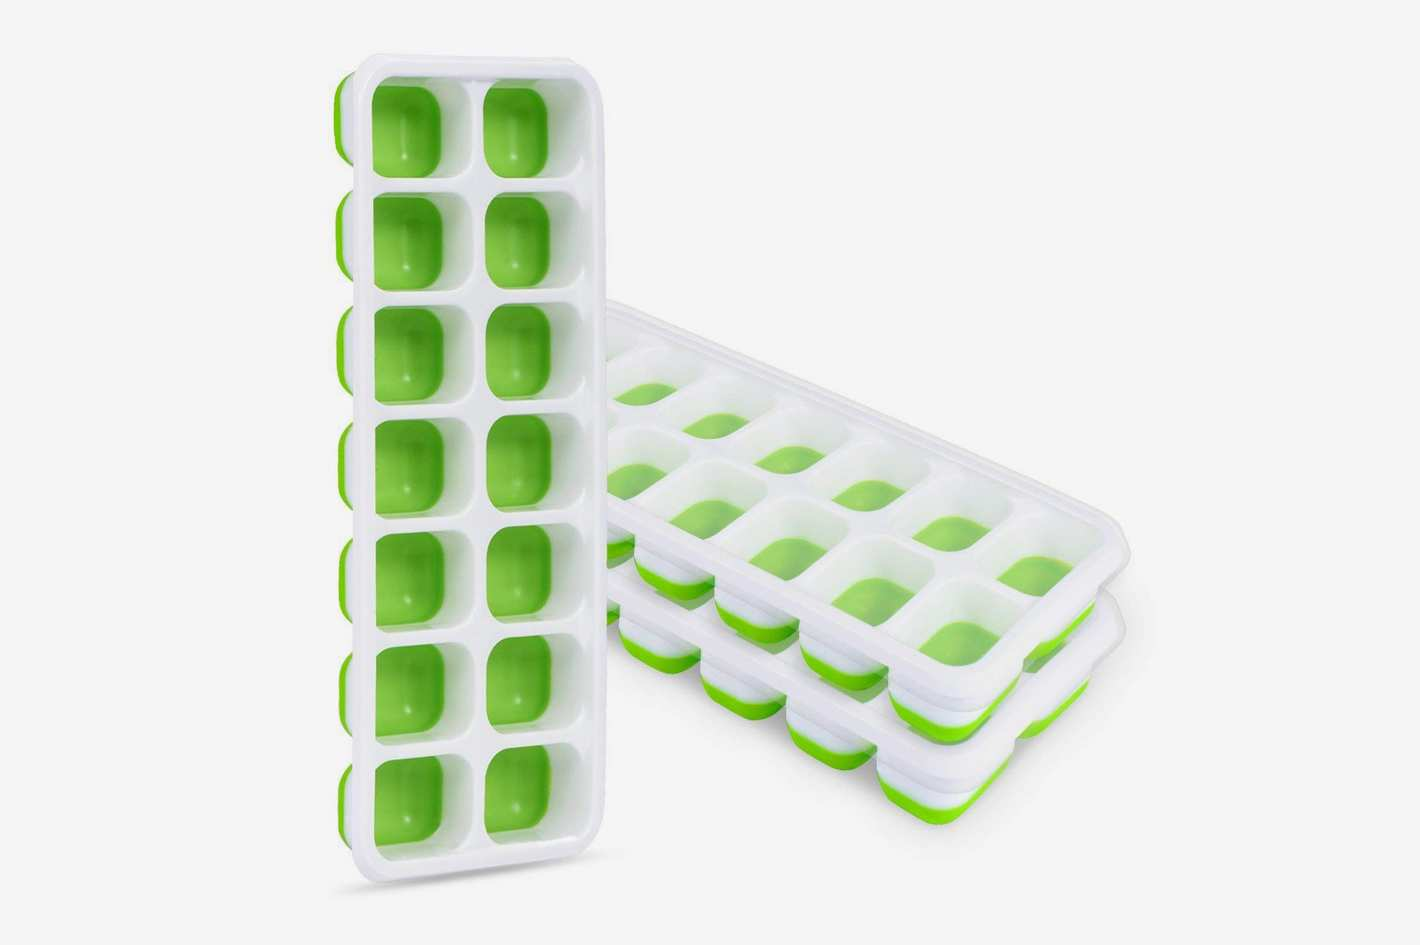 Adoric Life 3 Pack Easy Release Silicone Ice Cube Trays with Spill-Resistant Lids